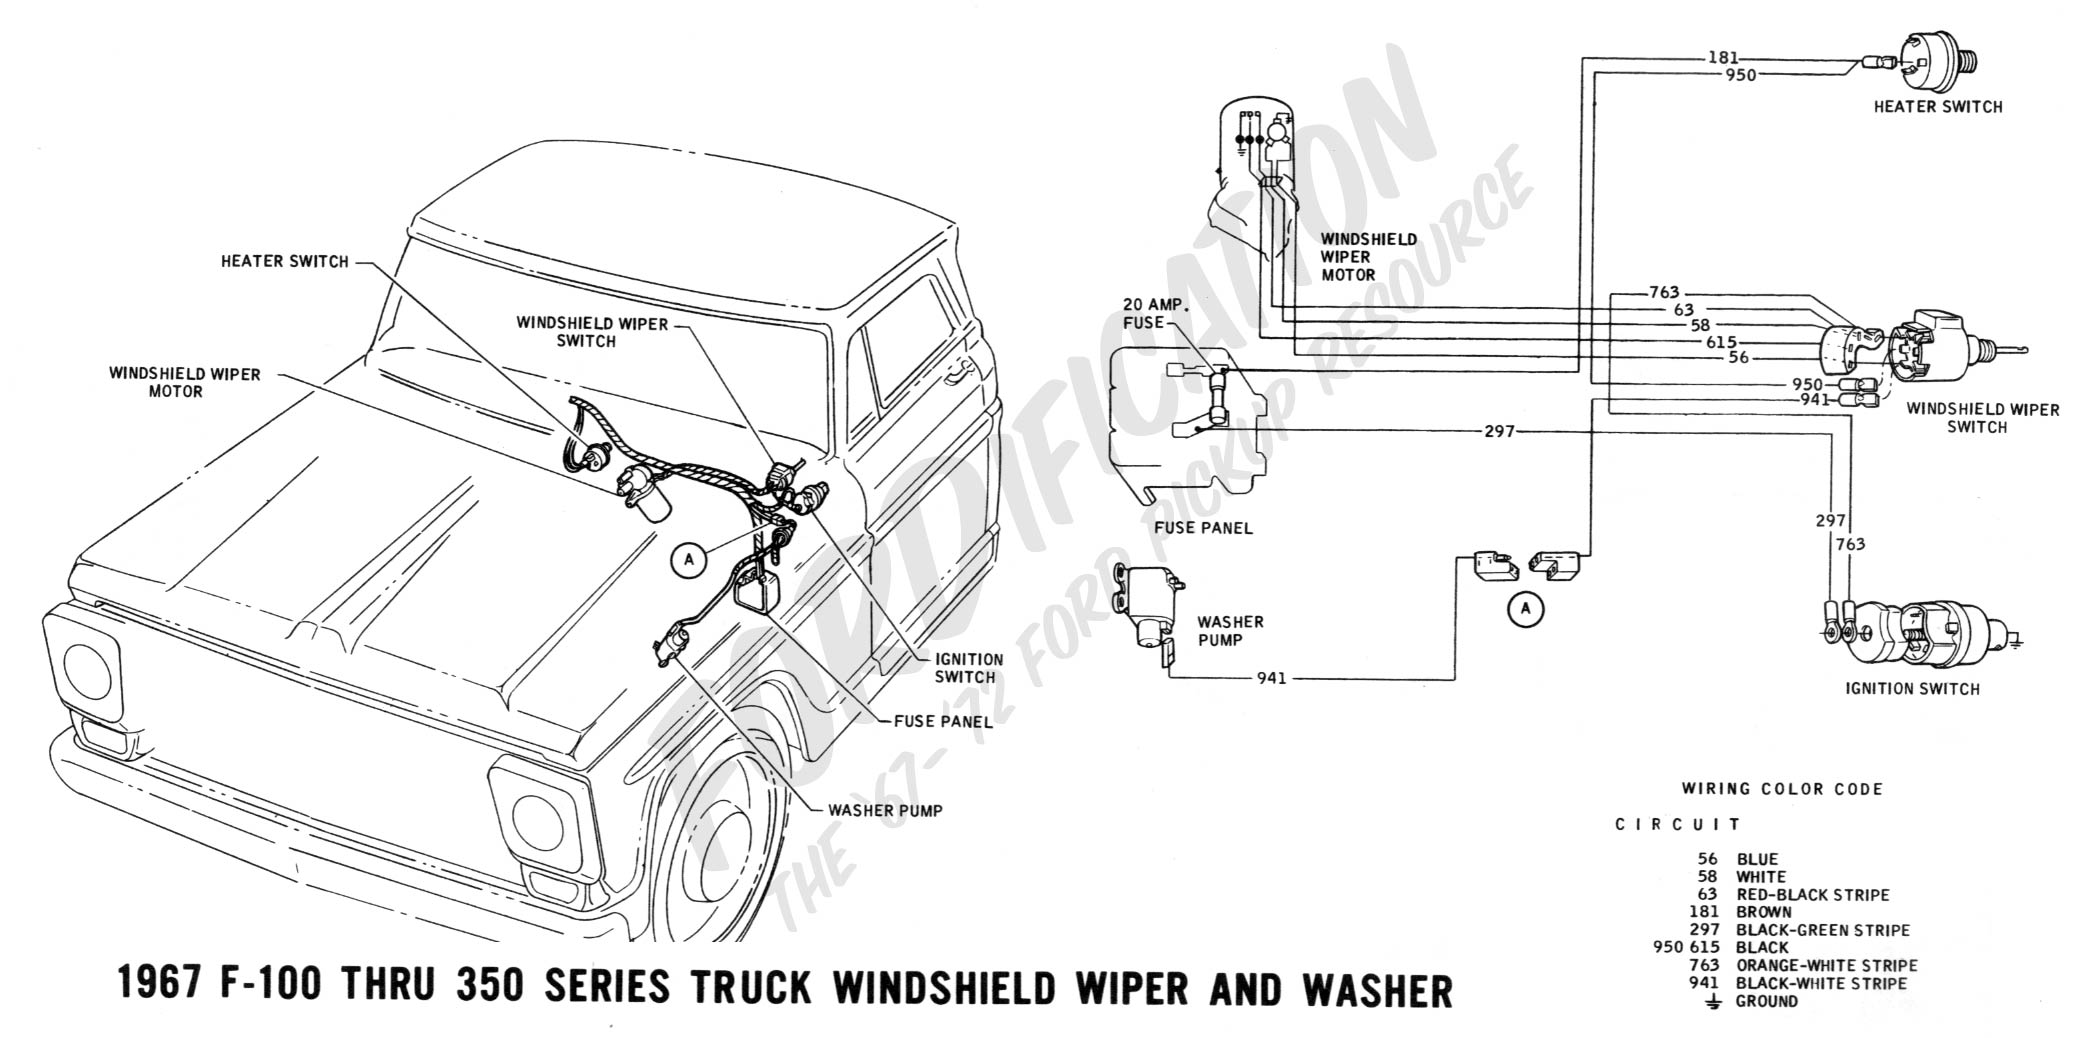 wiring 1967wipers ford truck technical drawings and schematics section h wiring 1999 ford explorer rear wiper wiring diagram at crackthecode.co